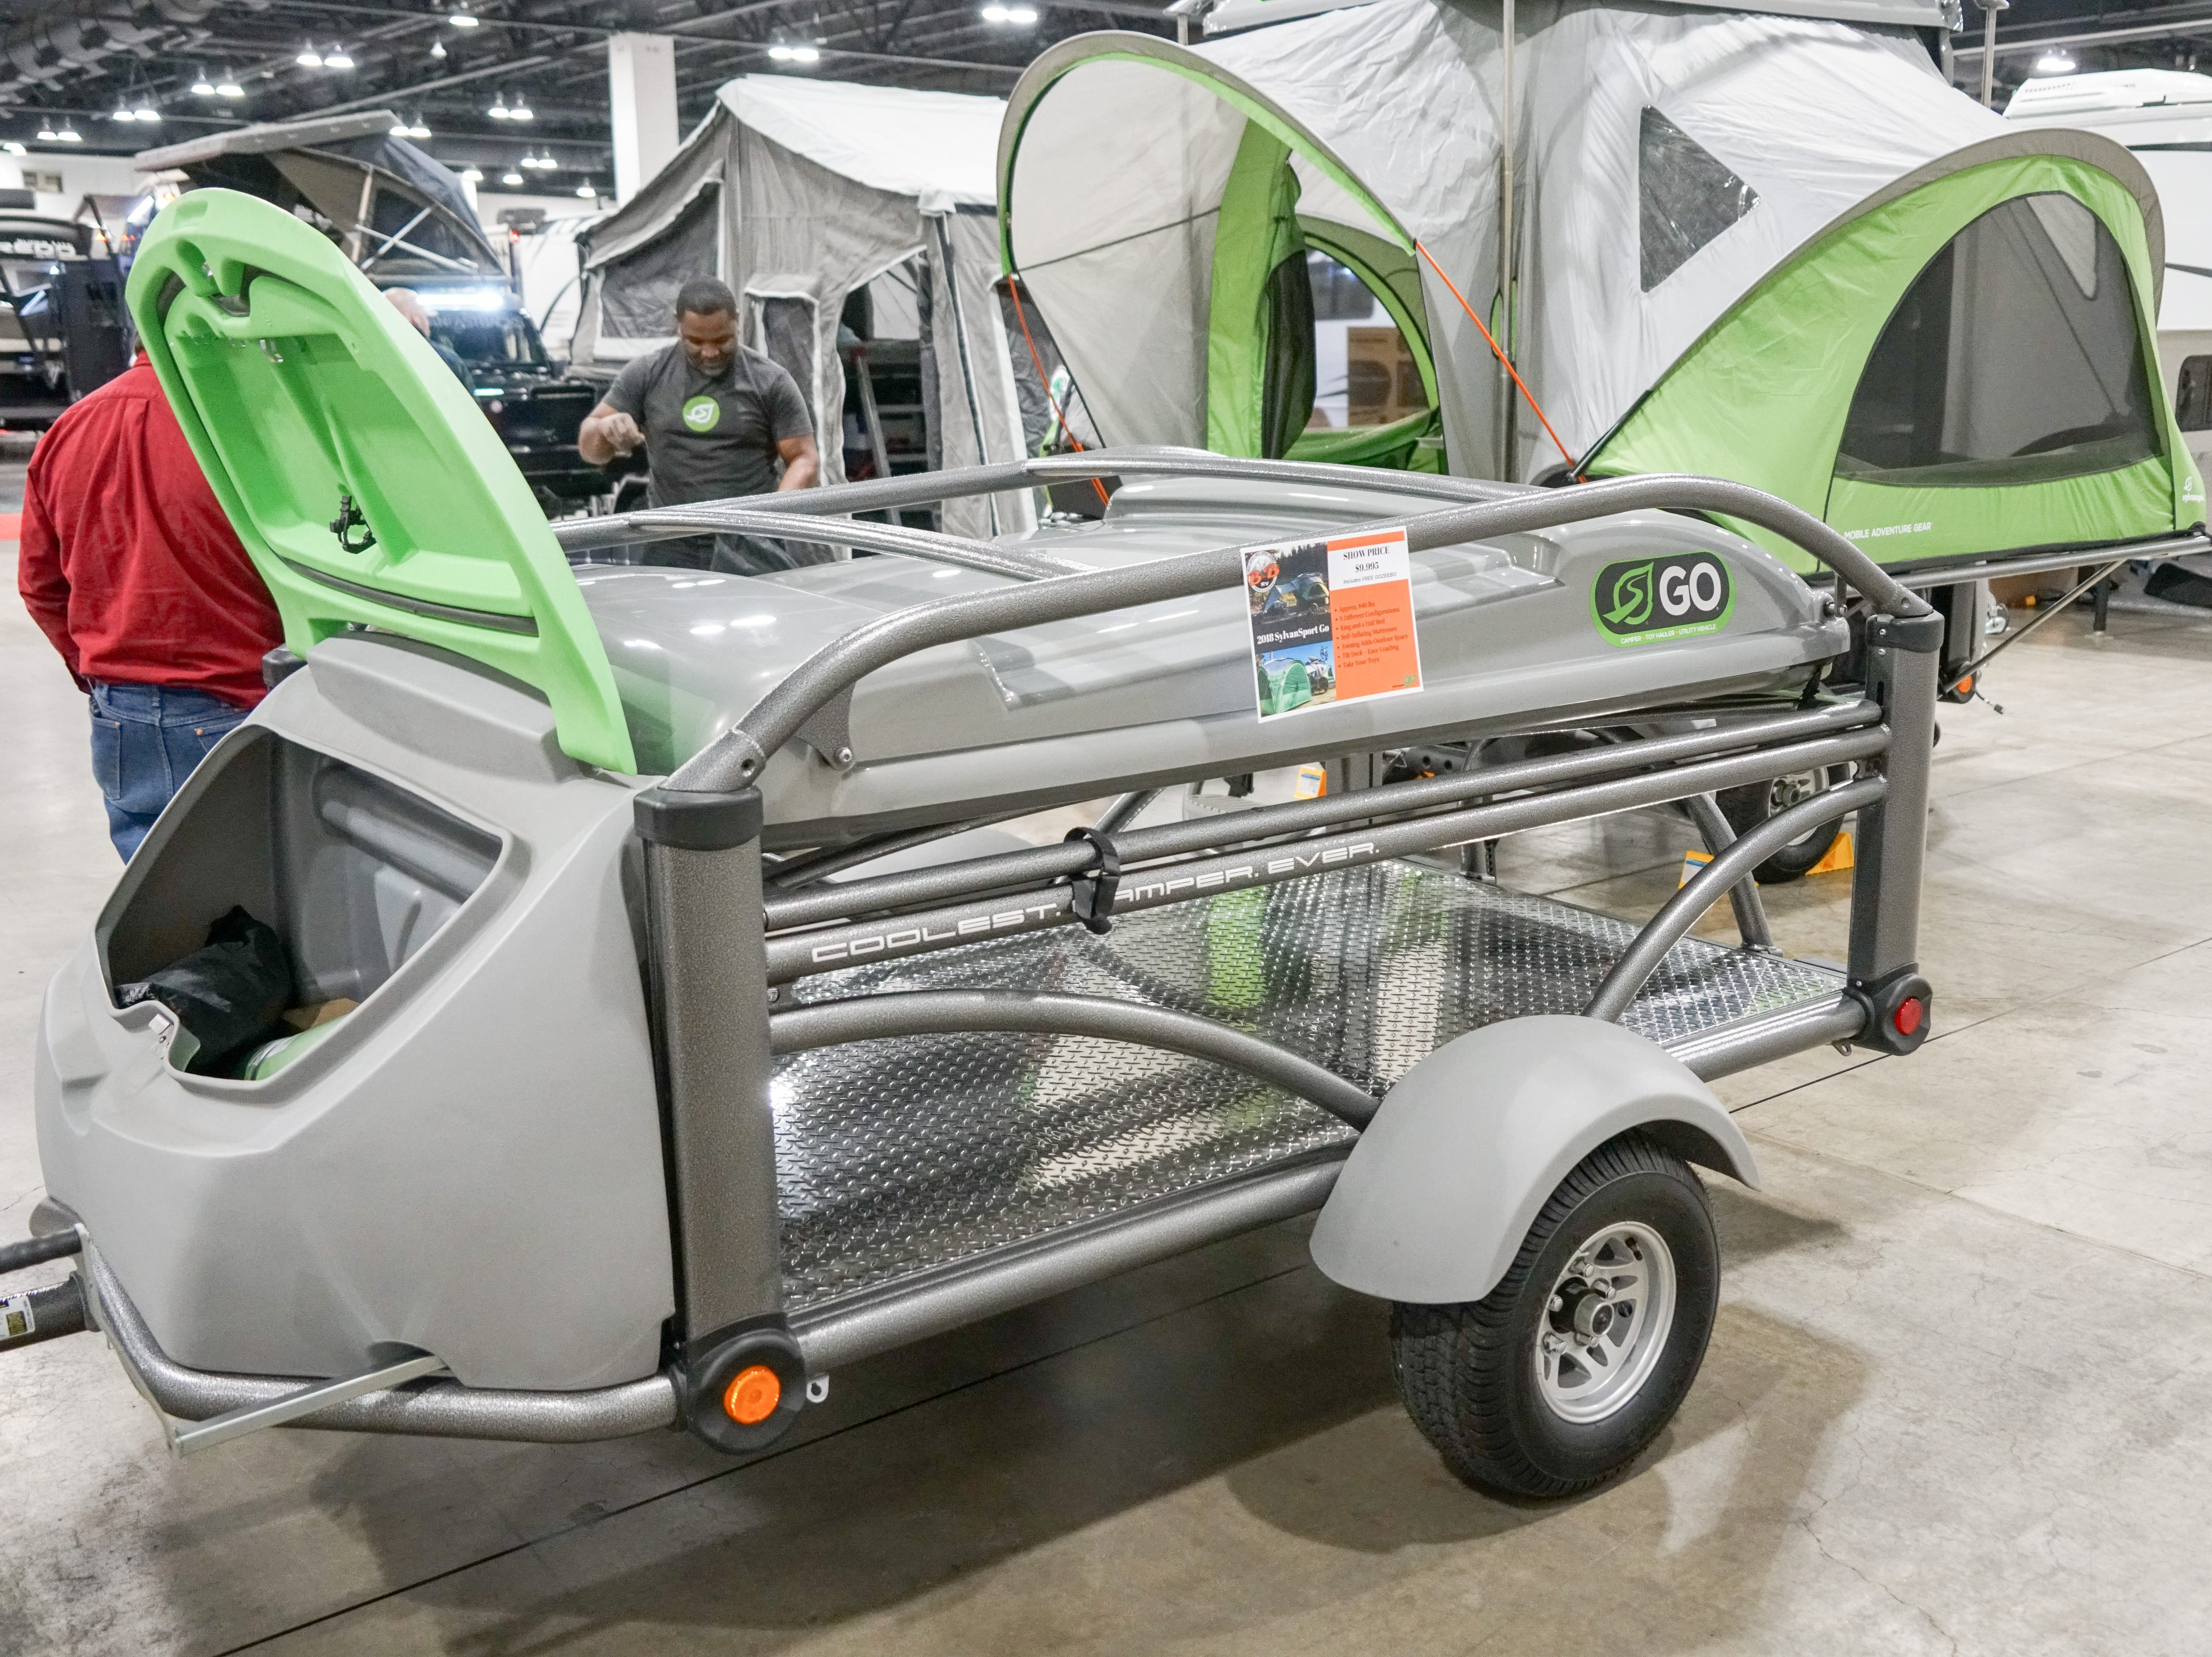 RV manufacturers now offer a wide range of lightweight campers that can be towed with small SUVs.